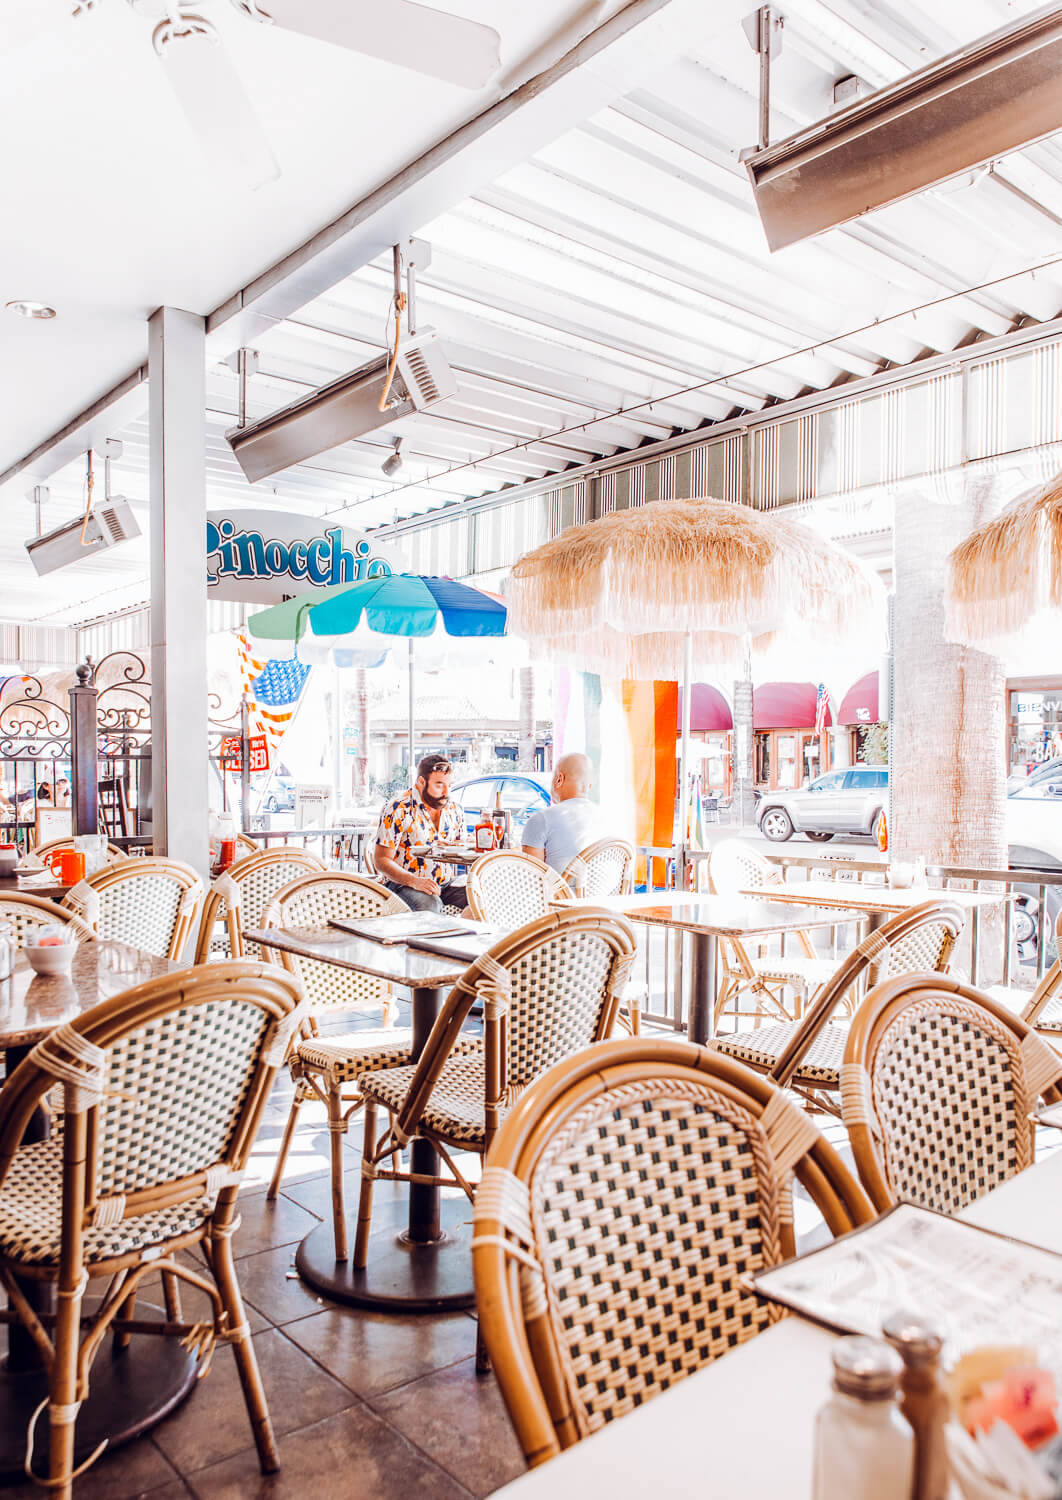 From the best happy hours, a $4.95 bottomless champagne brunch, and the city's most instagrammable locations, here are 15 local gems you must visit during your next Palm Springs, California getaway.